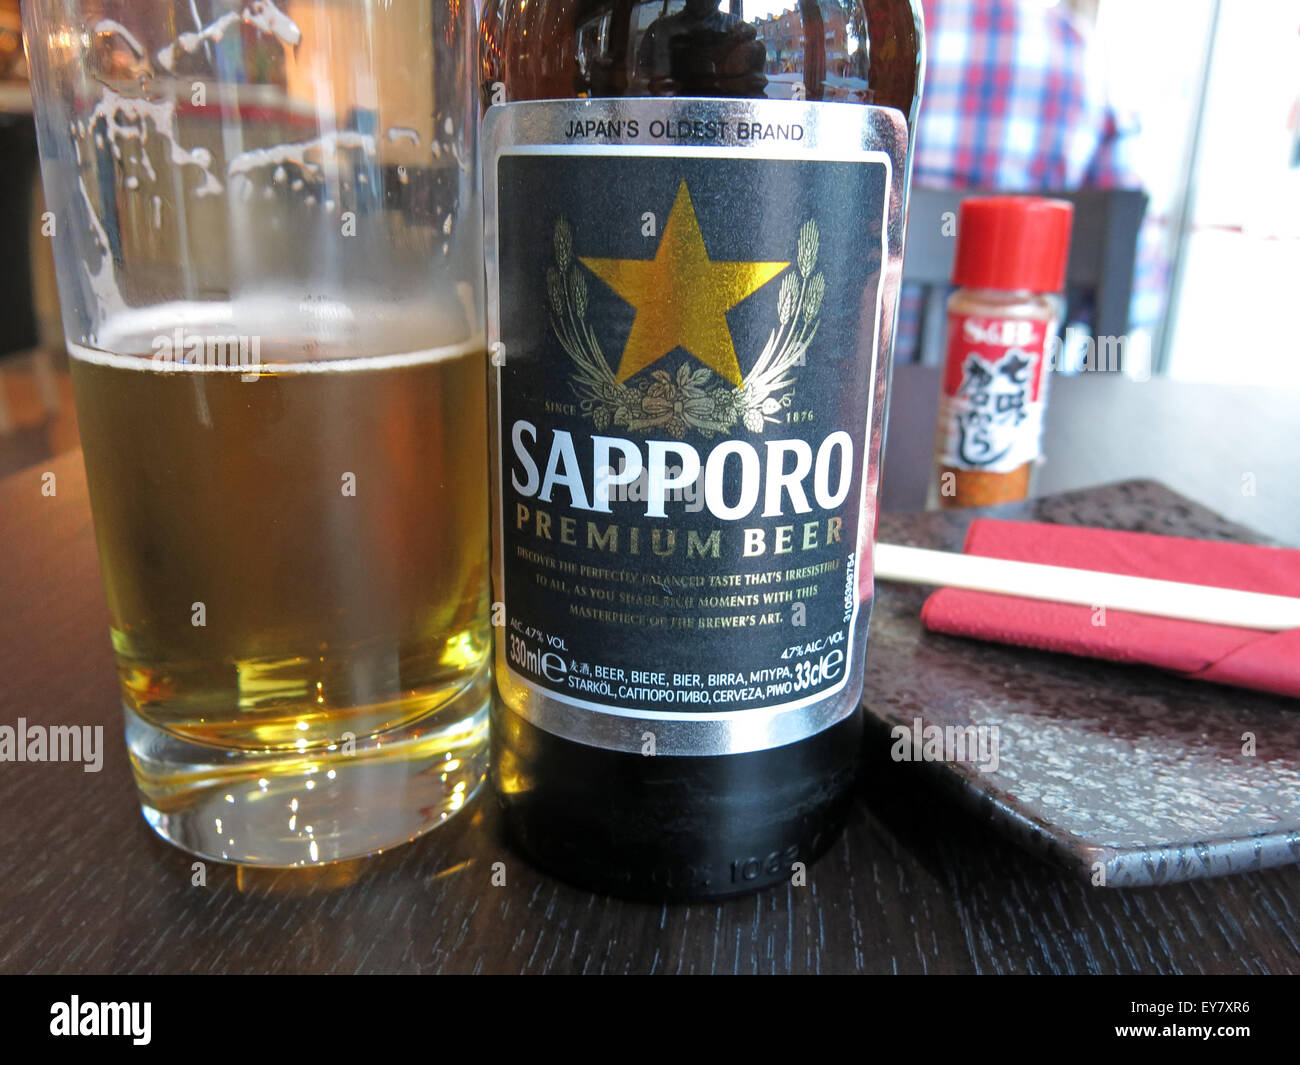 UK,United,Kingdom,miso,Sashimi,Tempora,fried,healthy,food,traditional,interesting,tourist,meal,meals,Yorkshire,west,Sapporo,premium,beer,eat,eating,drink,drinking,United Kingdom,Miso Soup,West Yorkshire,GoTonySmith,Buy Pictures of,Buy Images Of